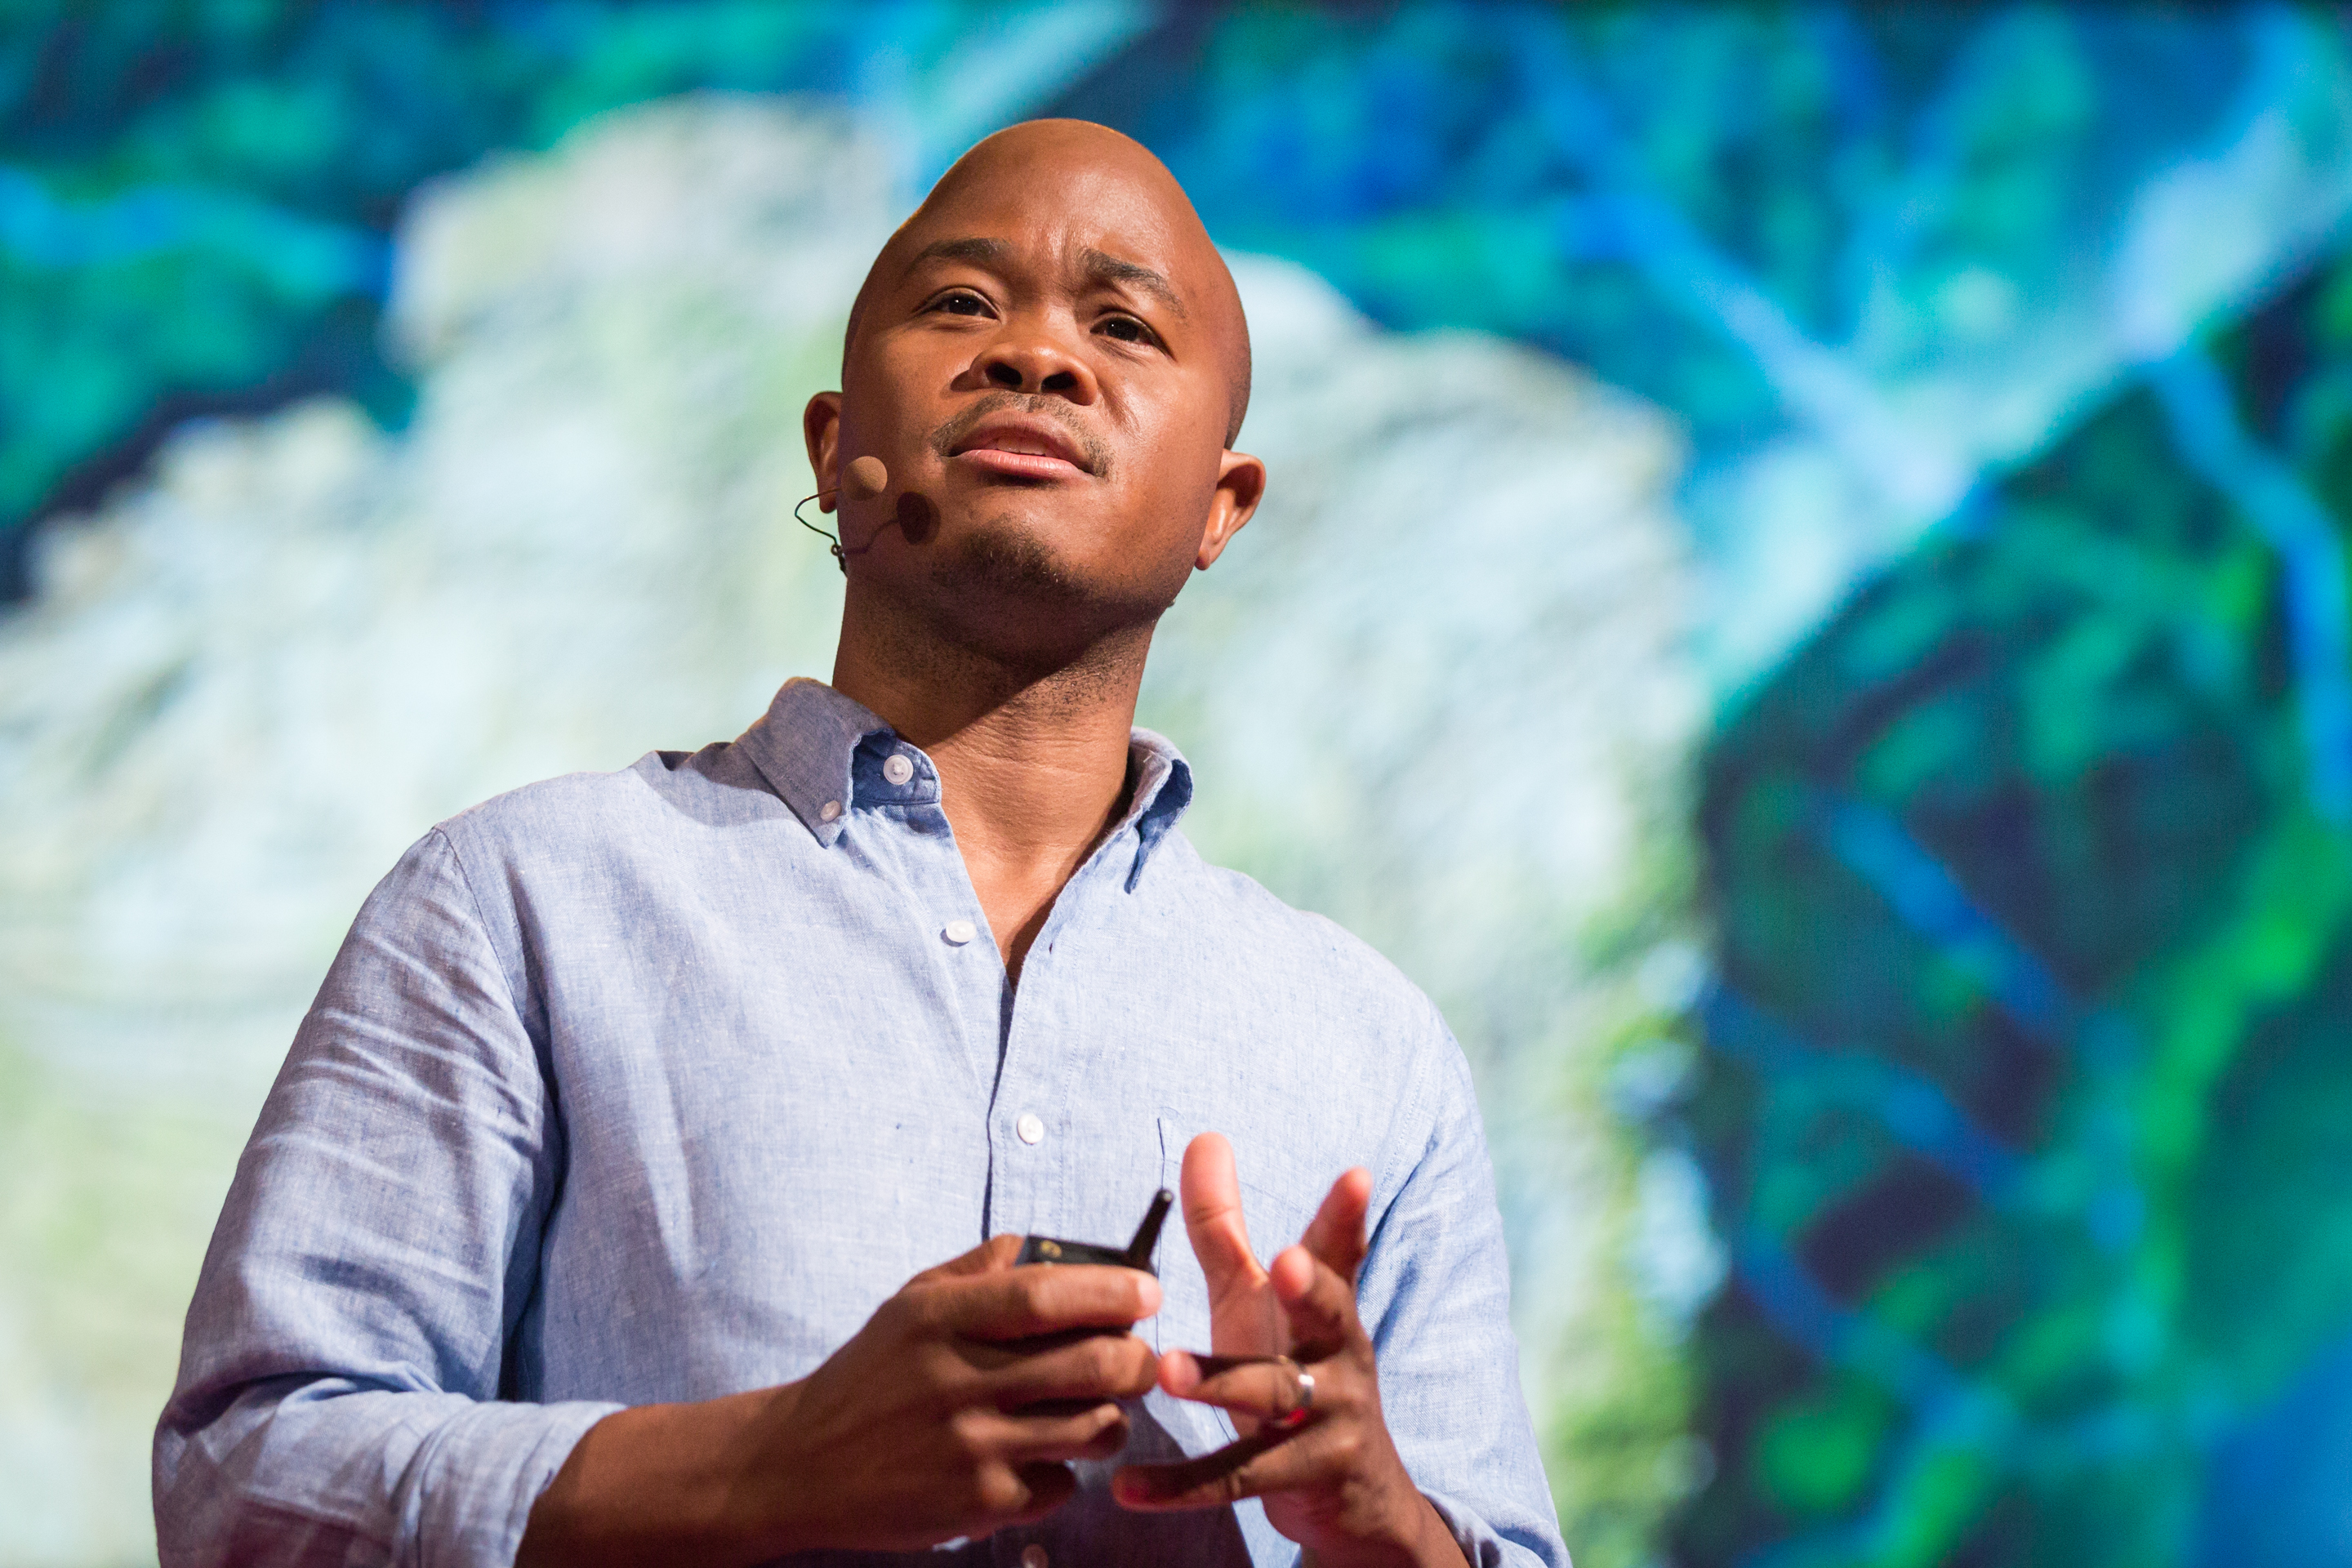 Fred Swaniker speaks at TEDGlobal 2014. Photo: James Duncan Davidson/TED